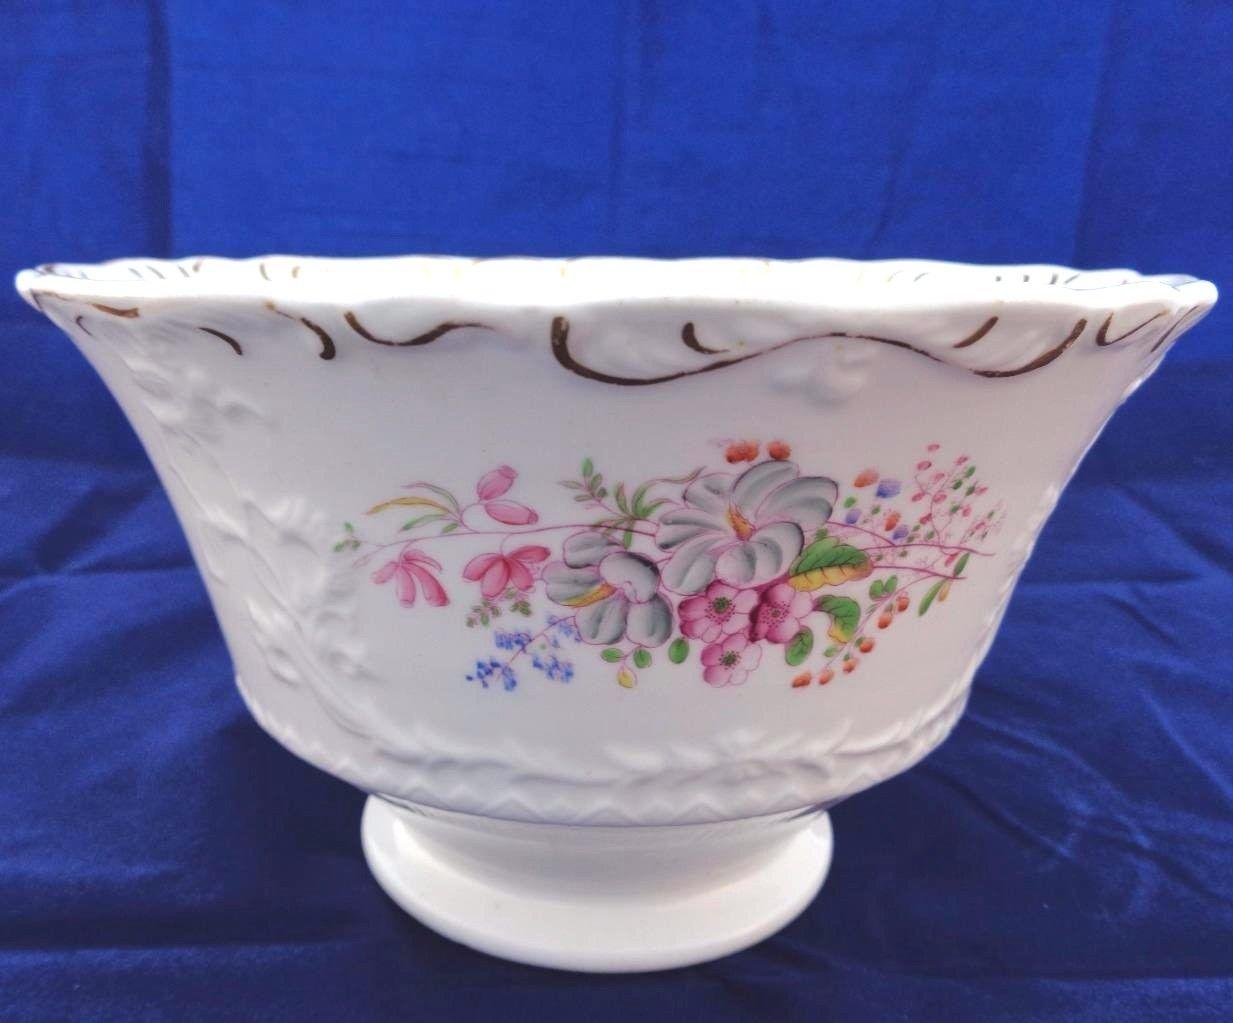 Antique Zachariah Boyle Relief Moulded Porcelain Milk Jug & Basin Pat 403 c 1835